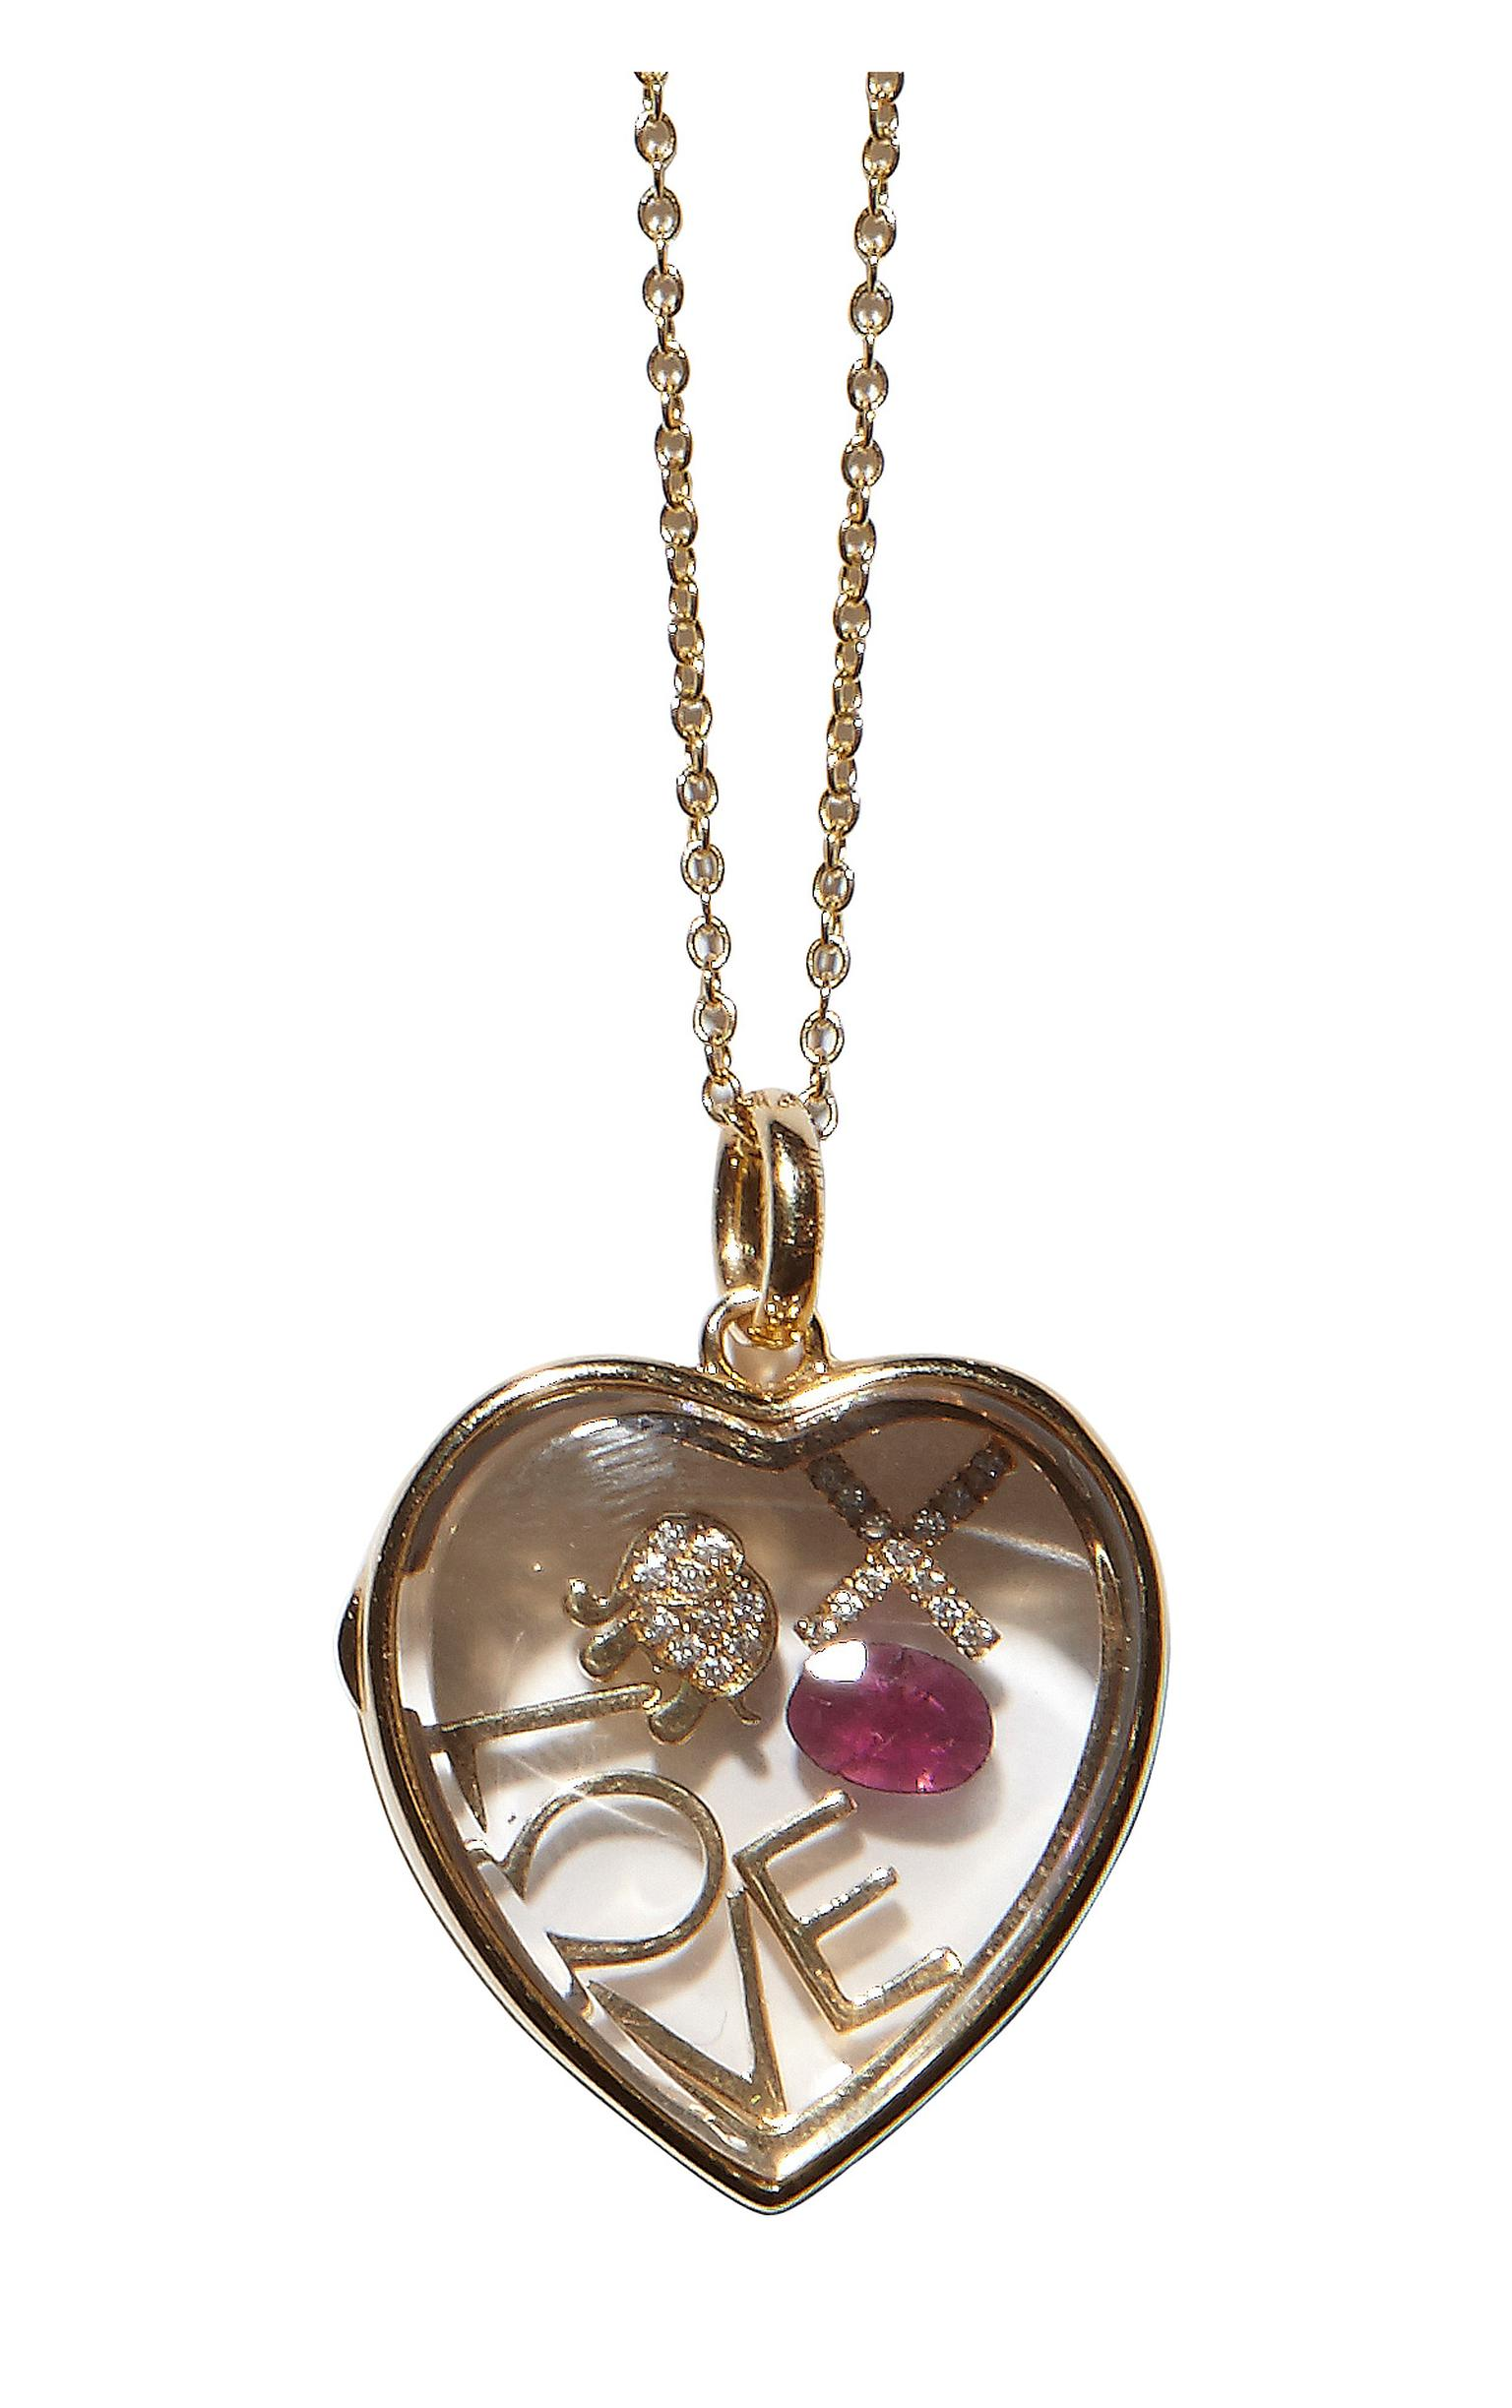 lockets treasure steel yellow gold locket heart image finish